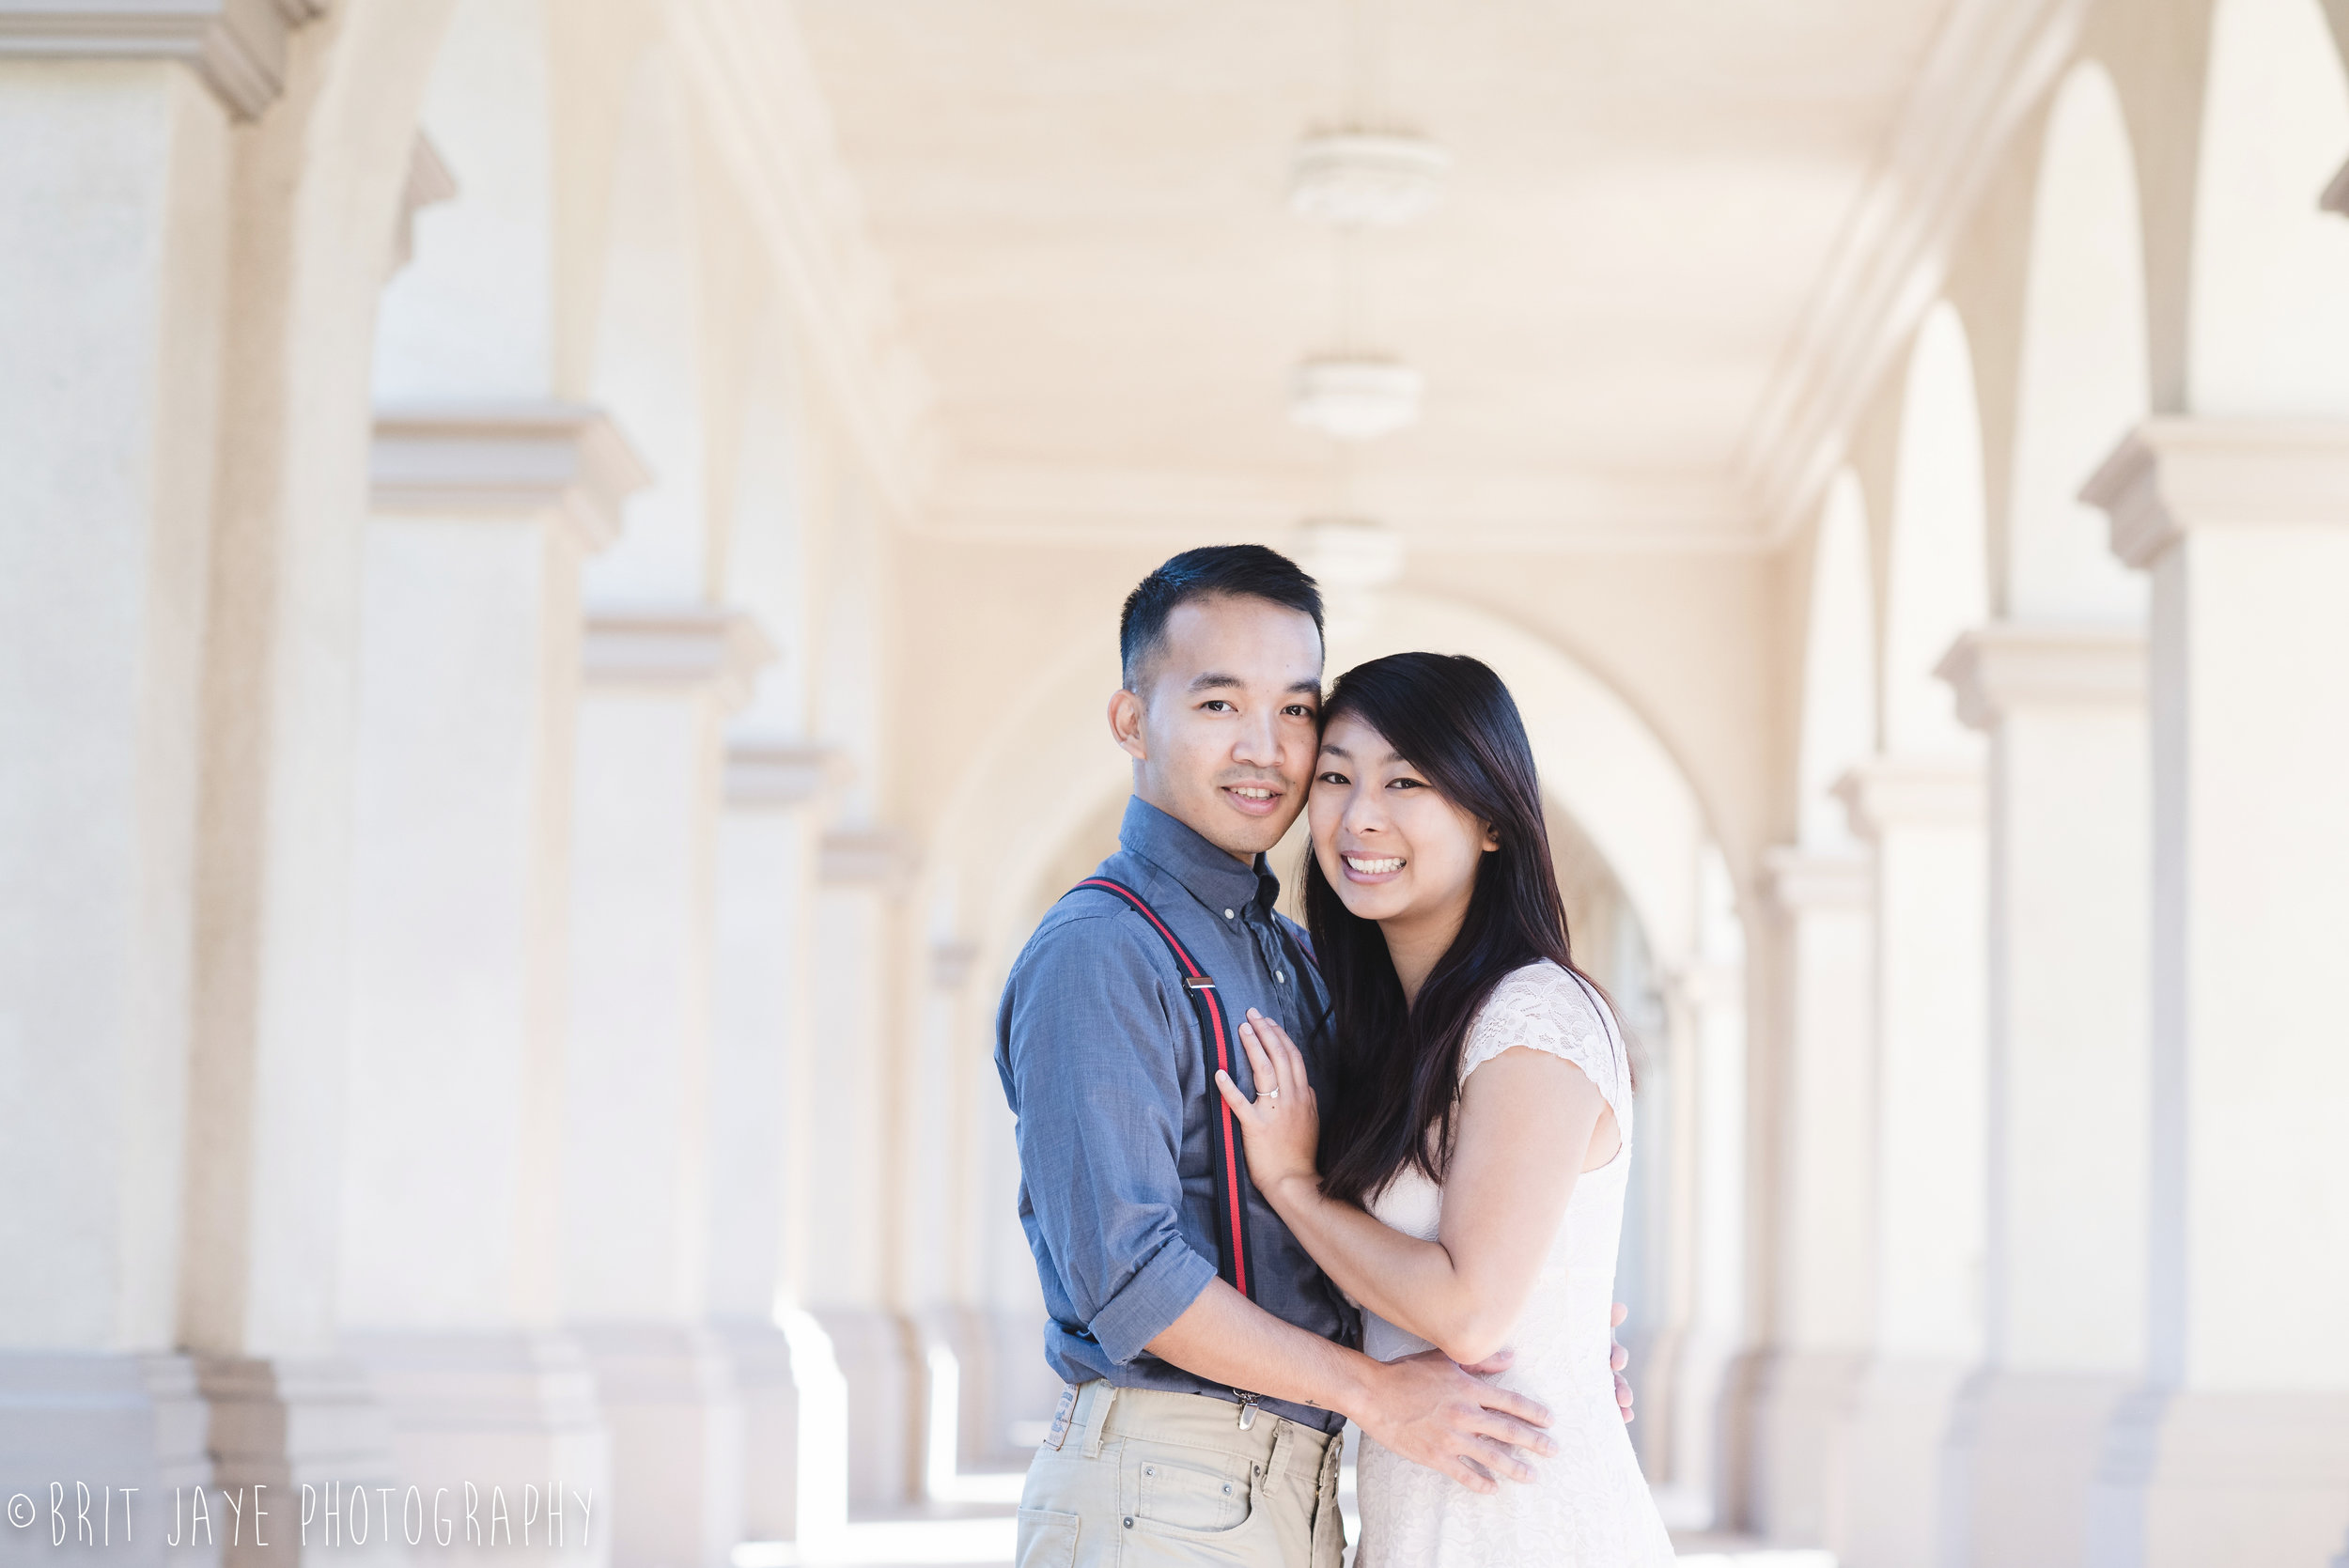 Balboa_Park_Engagement_Photos-56.jpg